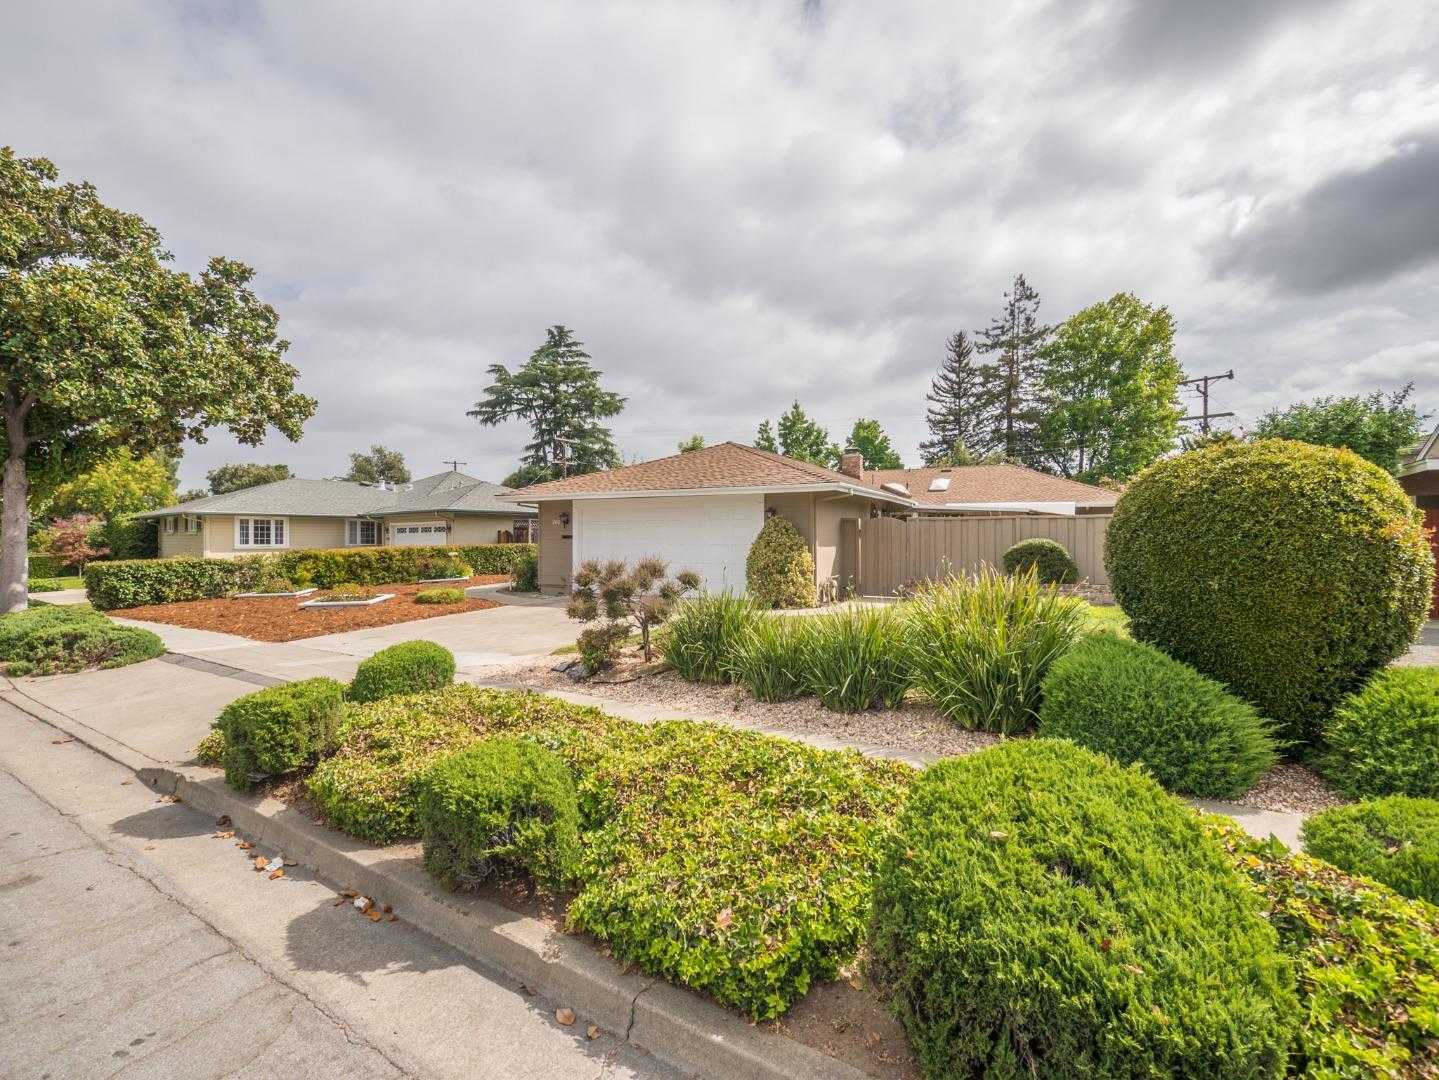 $1,869,000 - 4Br/3Ba -  for Sale in Sunnyvale